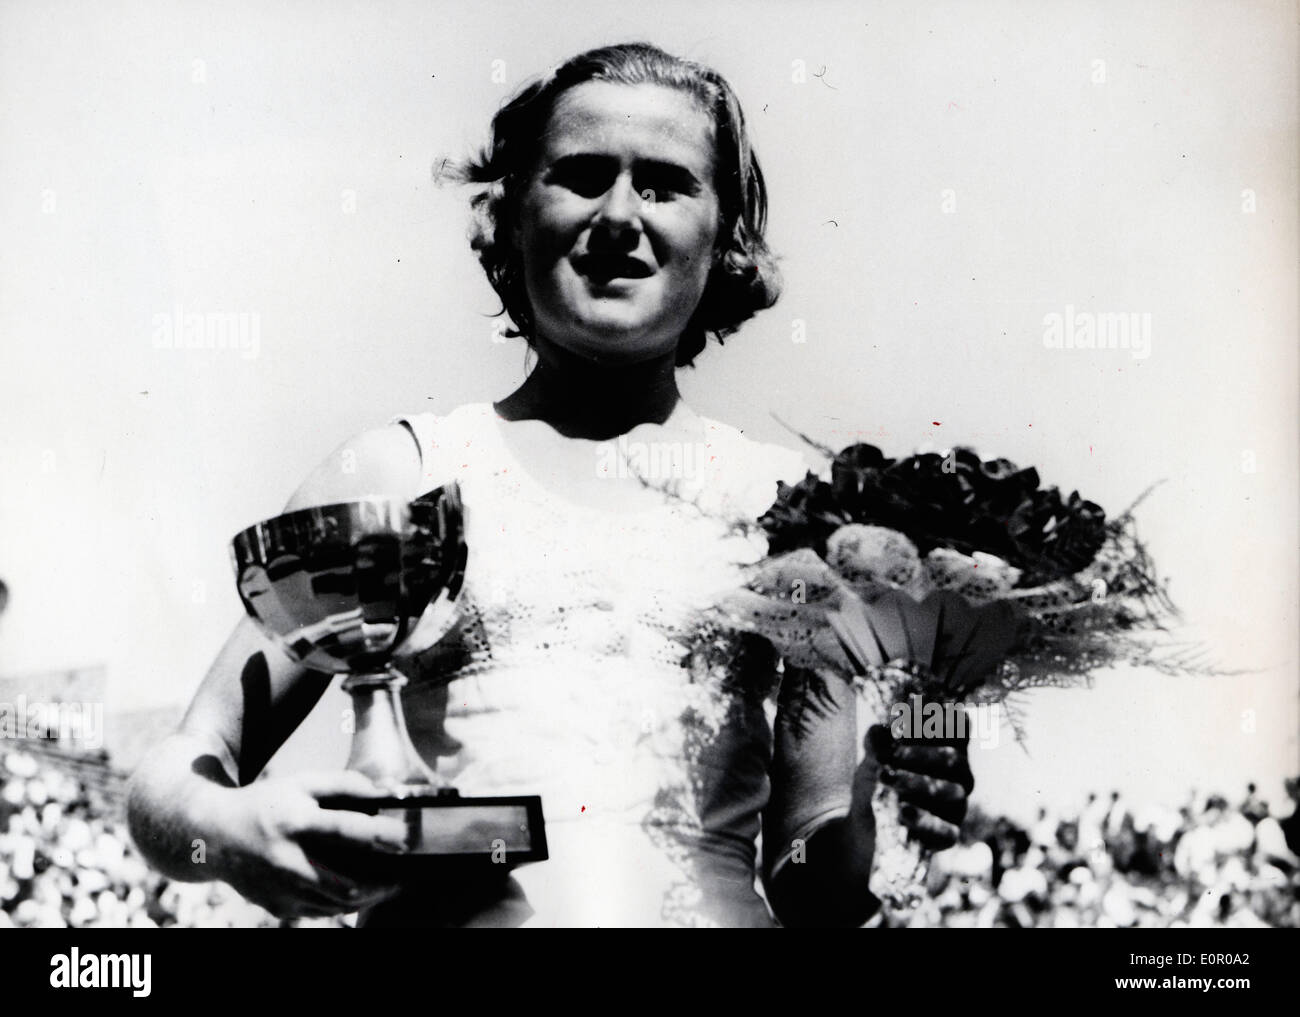 Shirley Bloomer wins her tennis match at Roland Garros - Stock Image